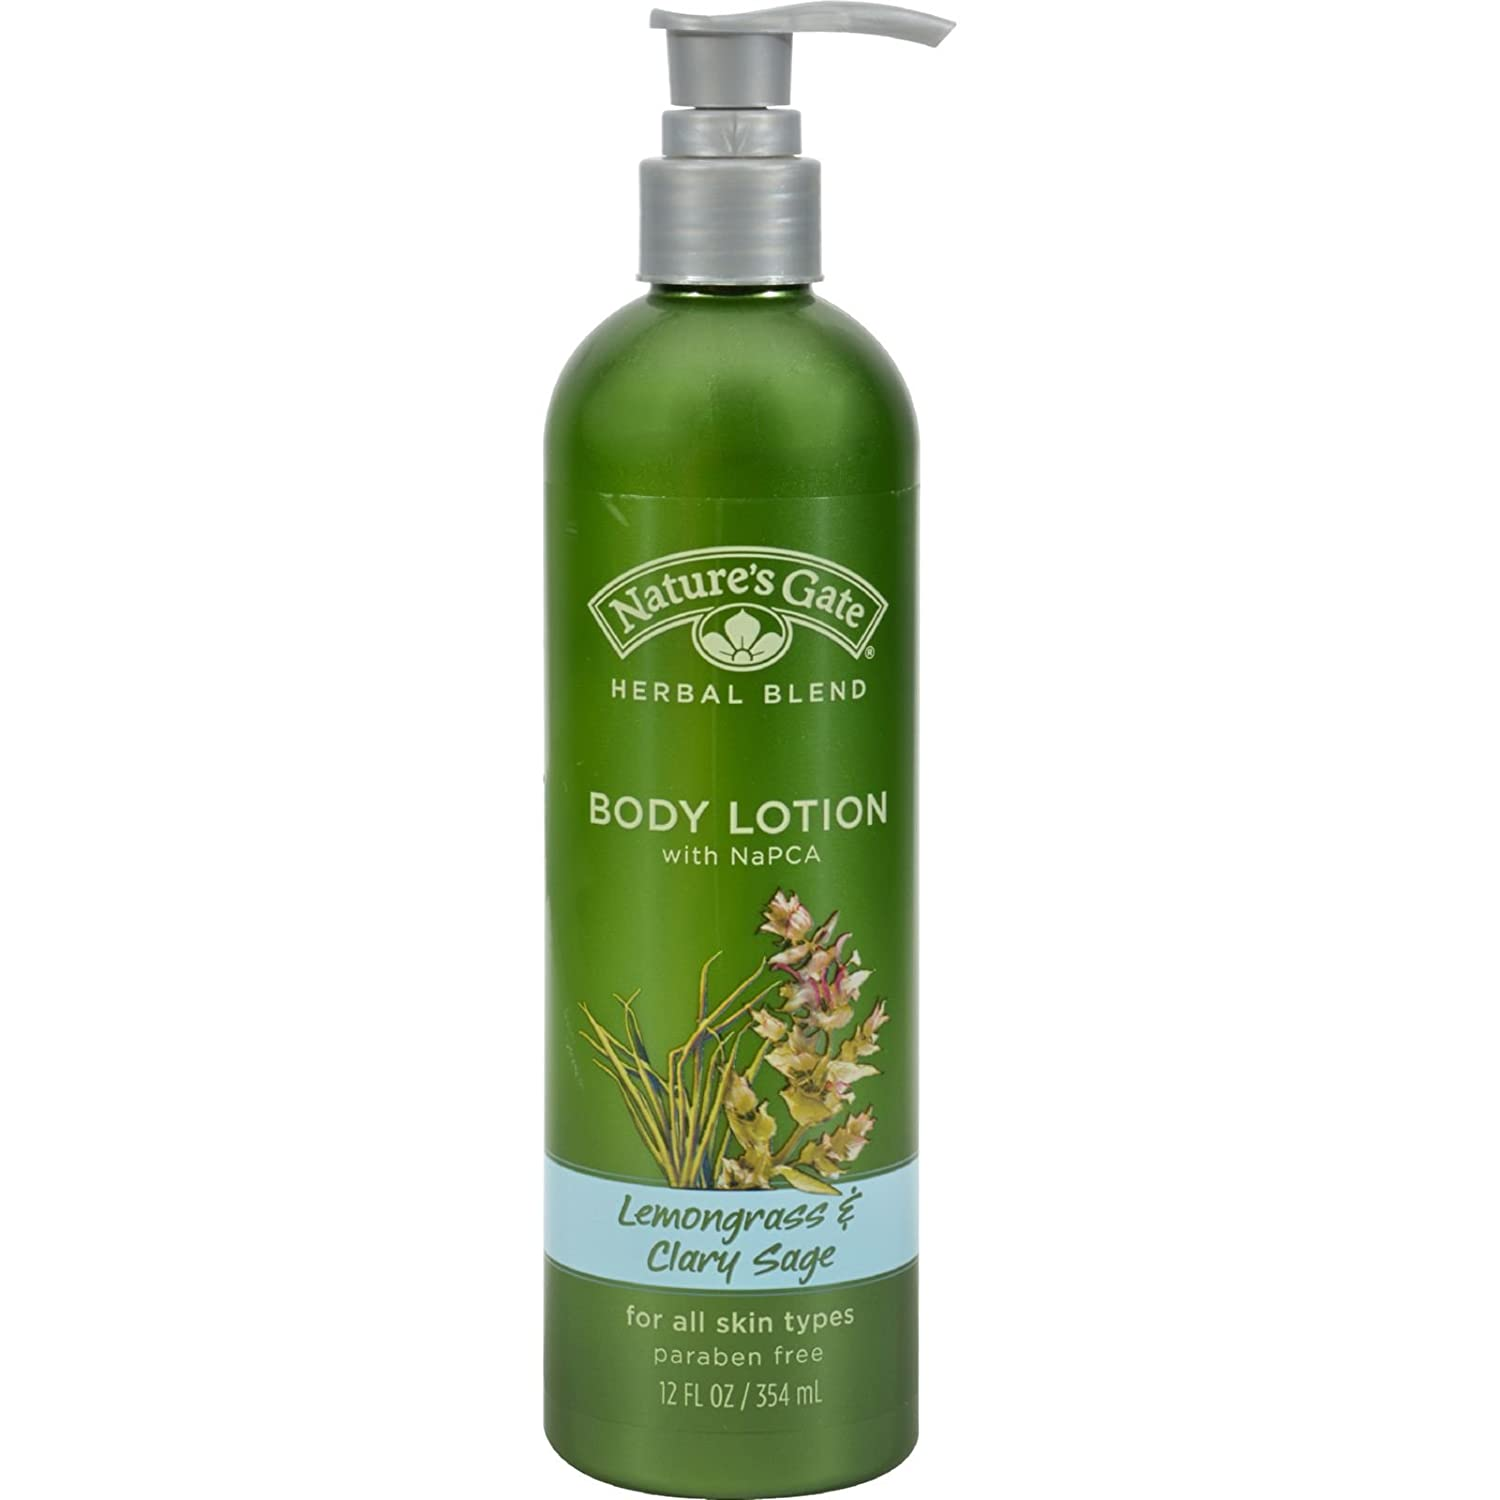 Nature's Gate Herbal Blend Lemongrass and Clary Sage Body Lotion